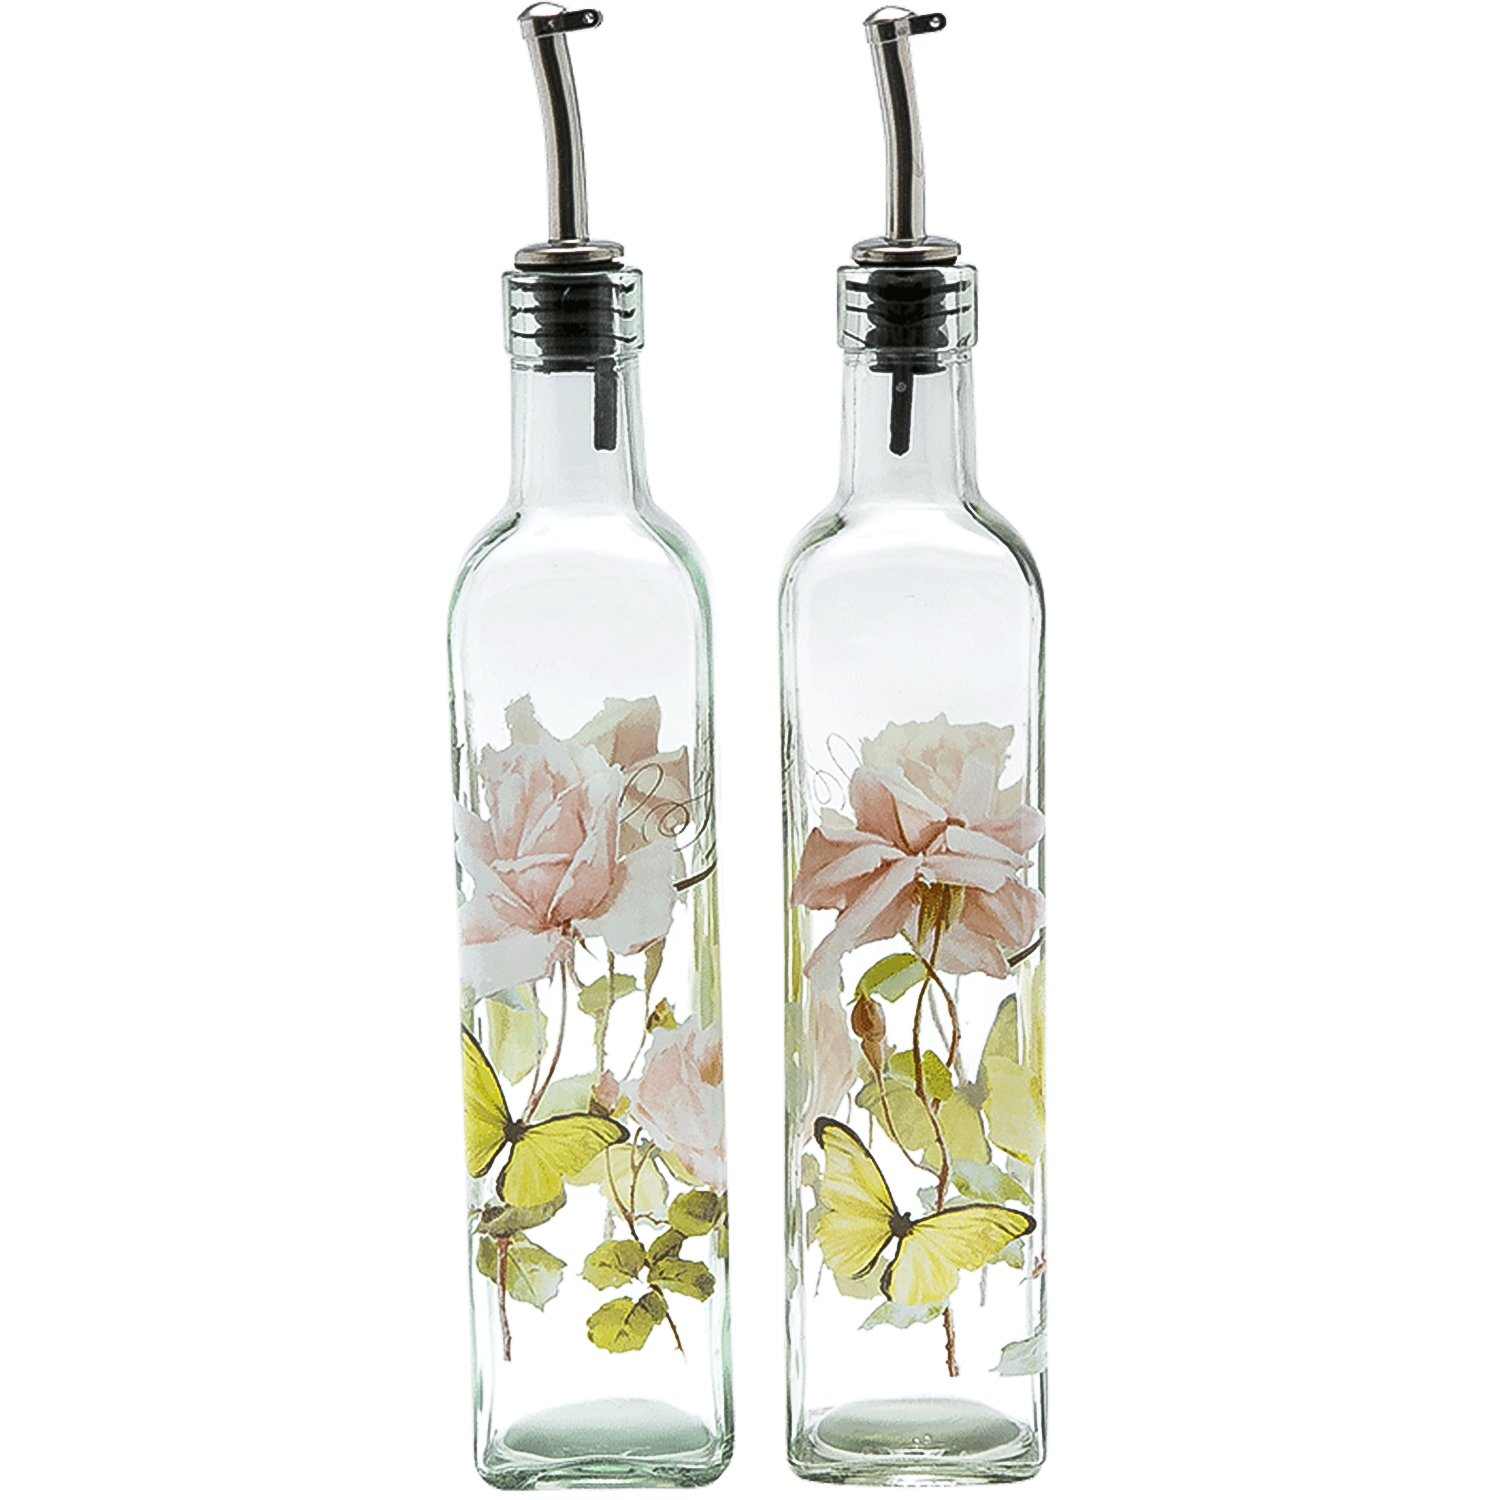 CEDAR HOME Olive Oil Bottle Set Glass Dispenser Vinegar Cruet 17oz. with Stainless Steel Leak Proof Pourer Spout for Cooking or Salad Dressing, 2 Pack, Pink by CEDAR HOME (Image #1)